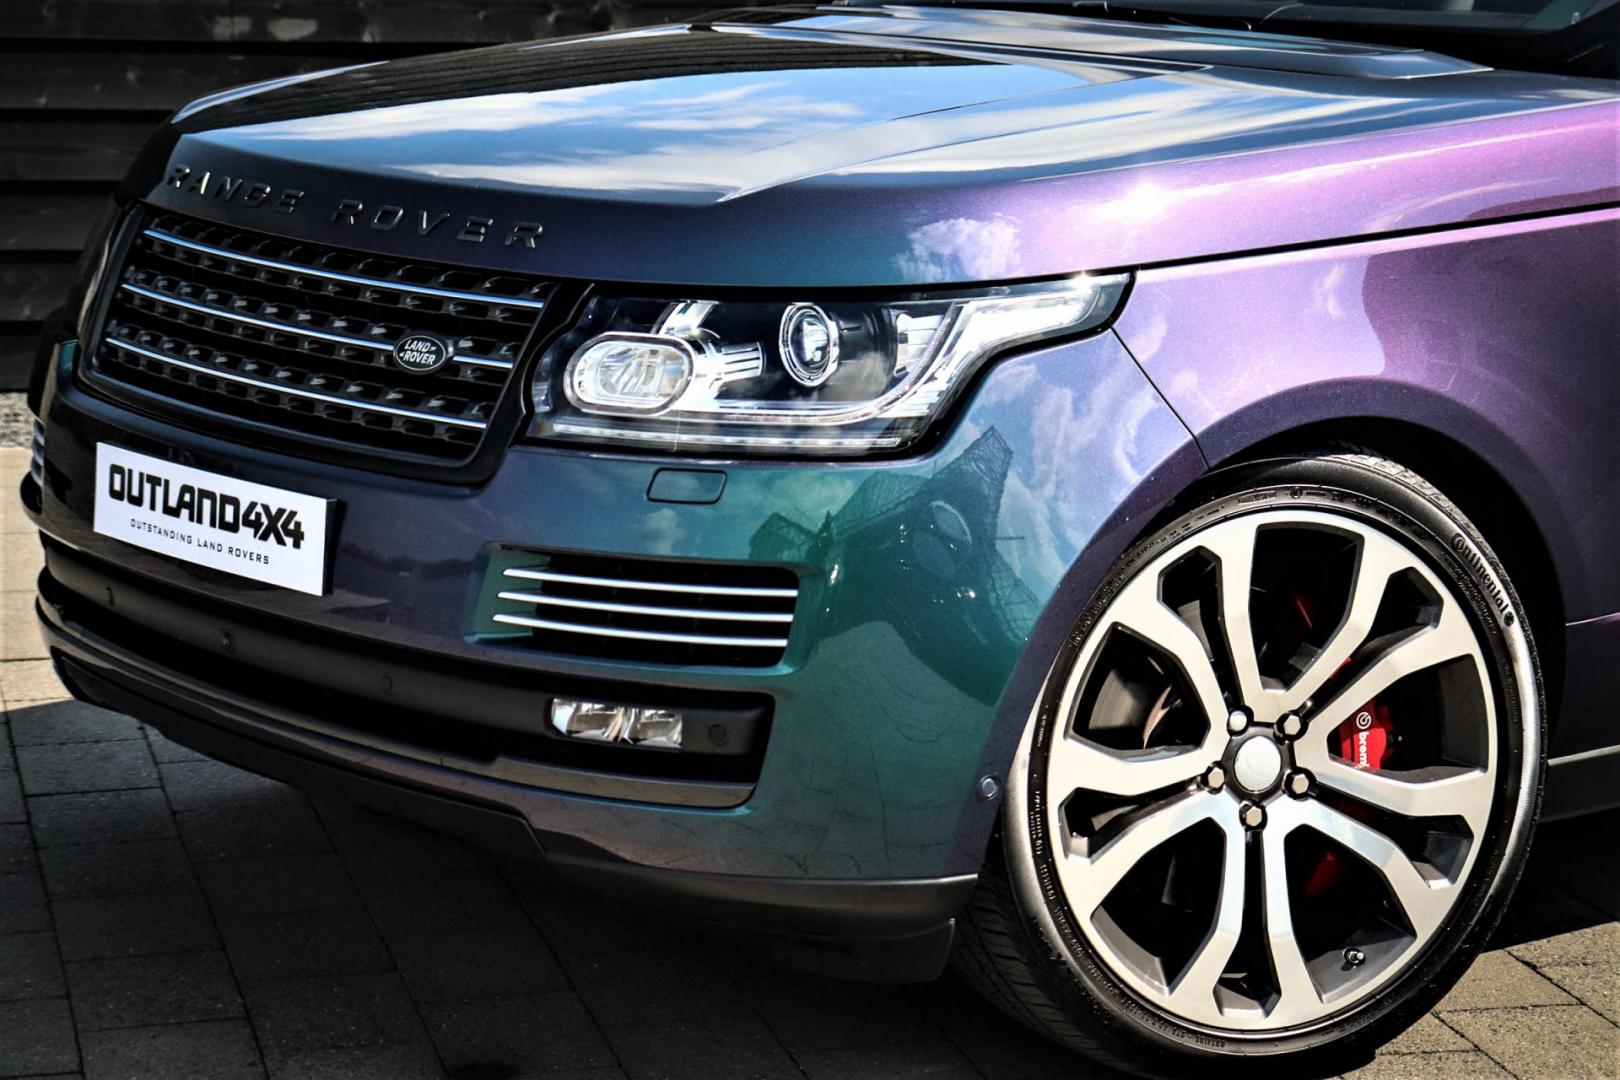 Range Rover in SVO Spectral Blue Ultra